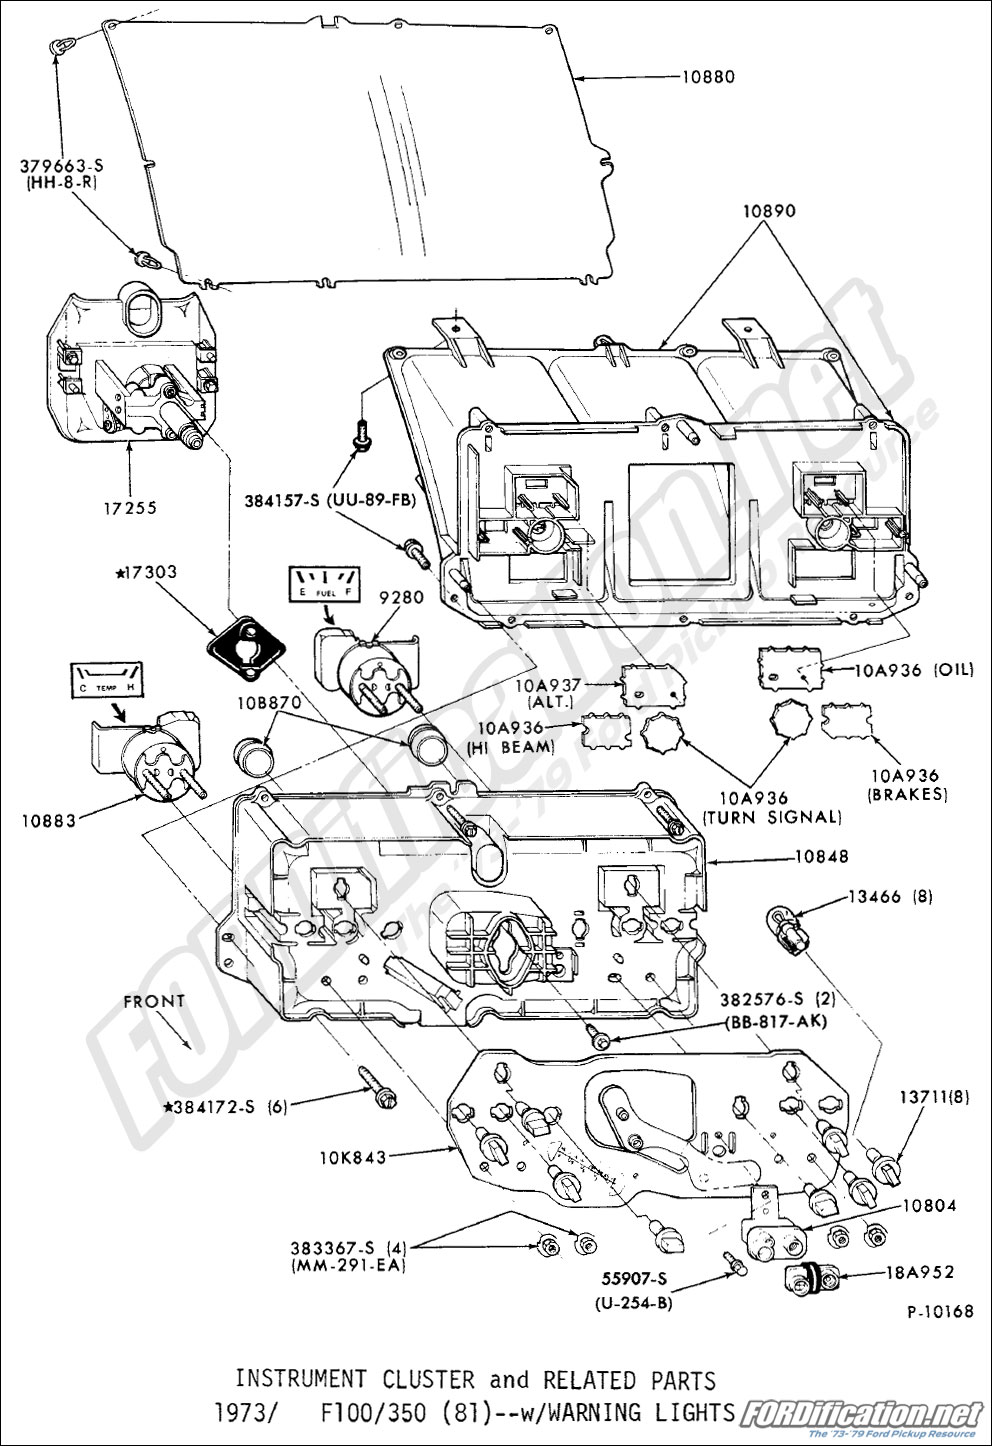 1979 ford truck wiring harness 1965 ford f100 ignition switch wiring diagram e27 wiring diagram  1965 ford f100 ignition switch wiring